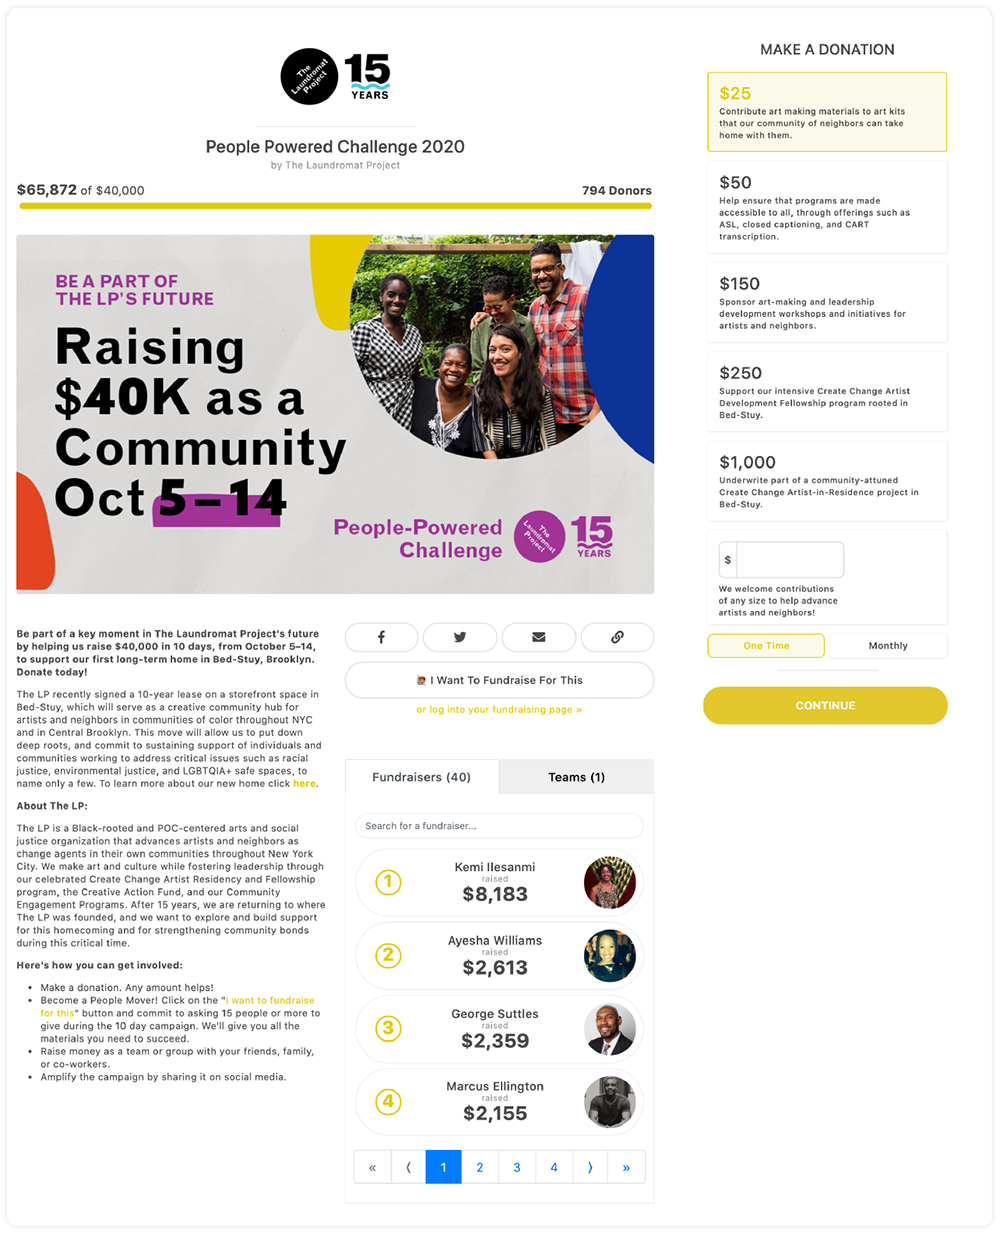 """The Laundromat Project """"People-Powered Challenge"""" Page including 40 individual fundraisers each with a Peer-to-Peer Fundraising page"""